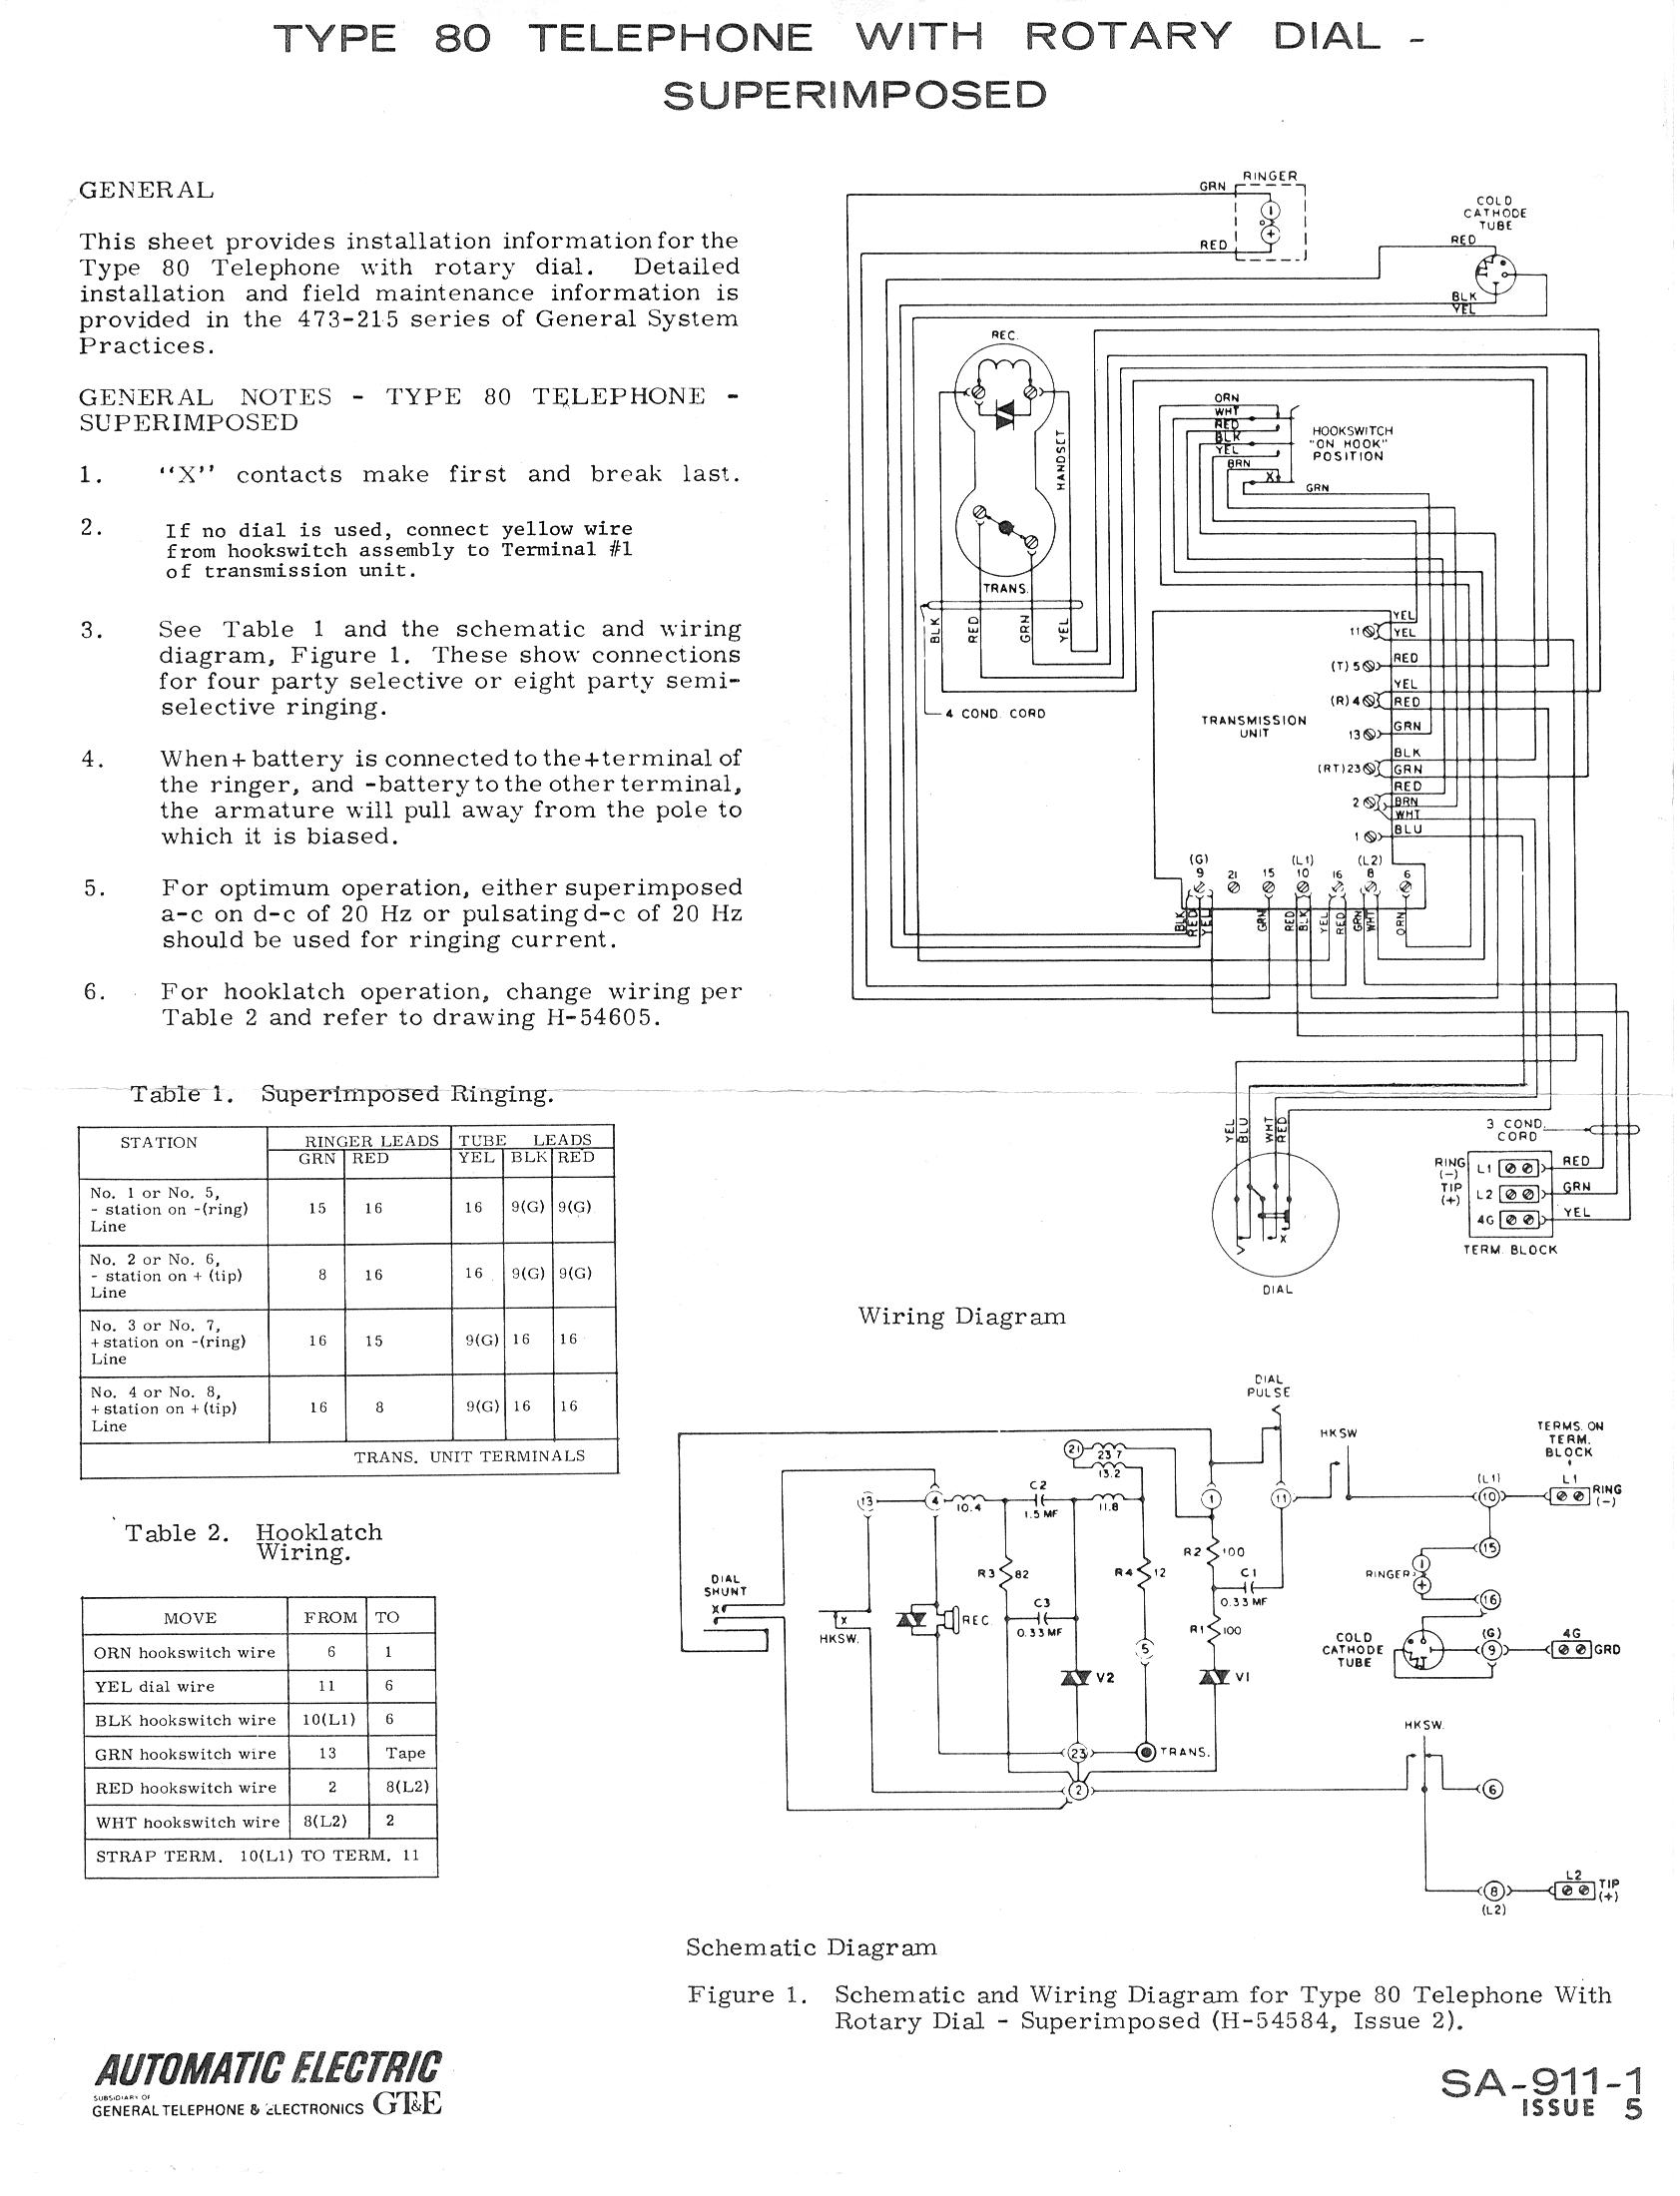 Western Electric Candlestick Wiring Diagram